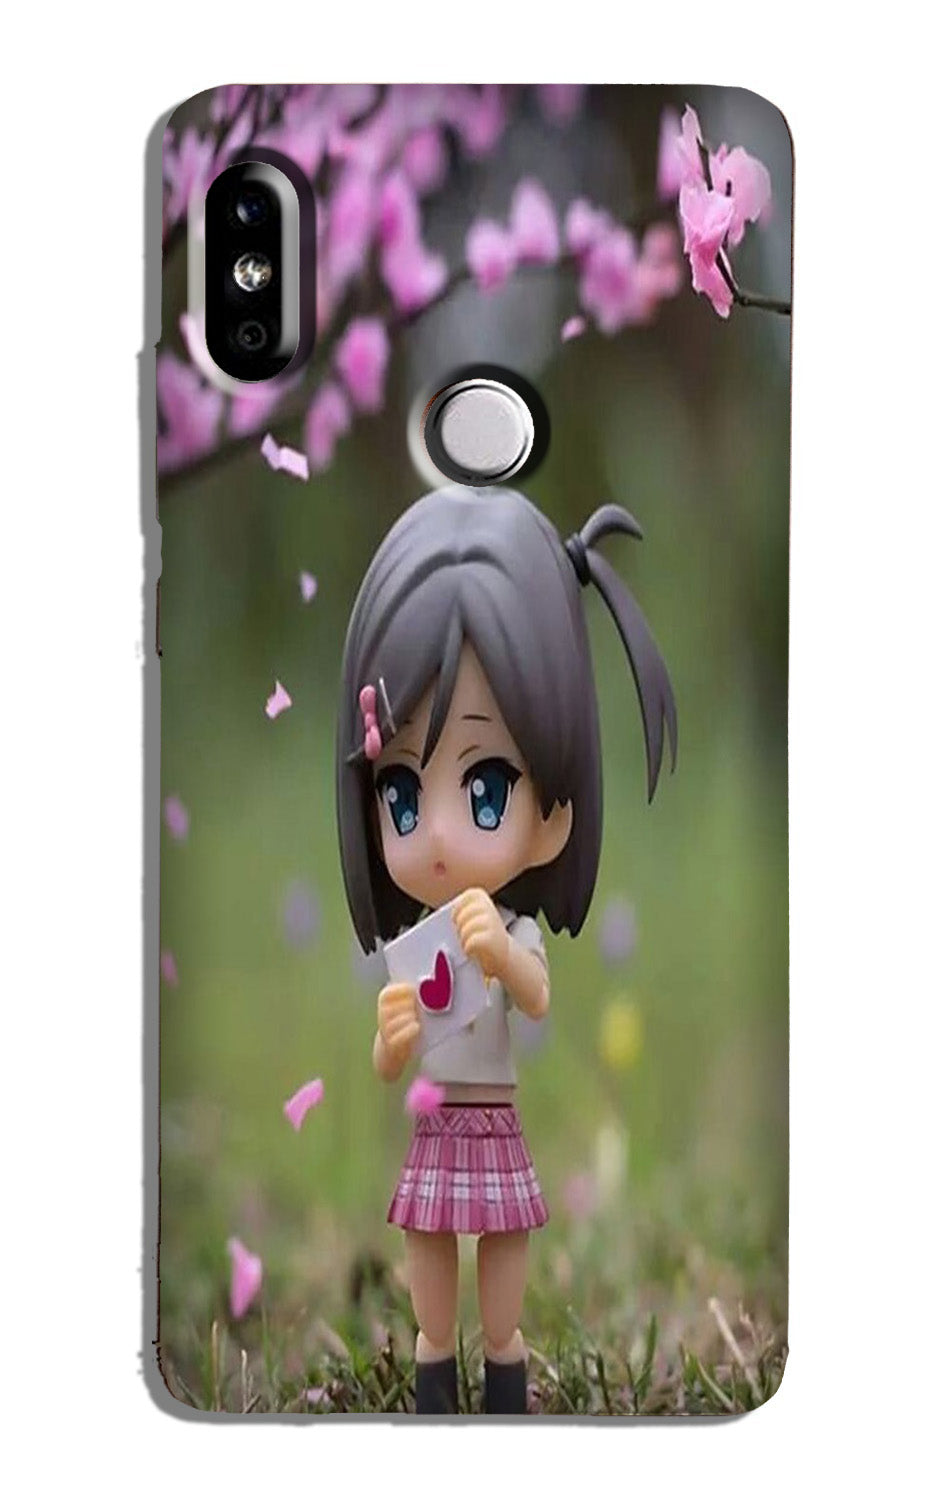 Cute Girl Case for Redmi 6 Pro